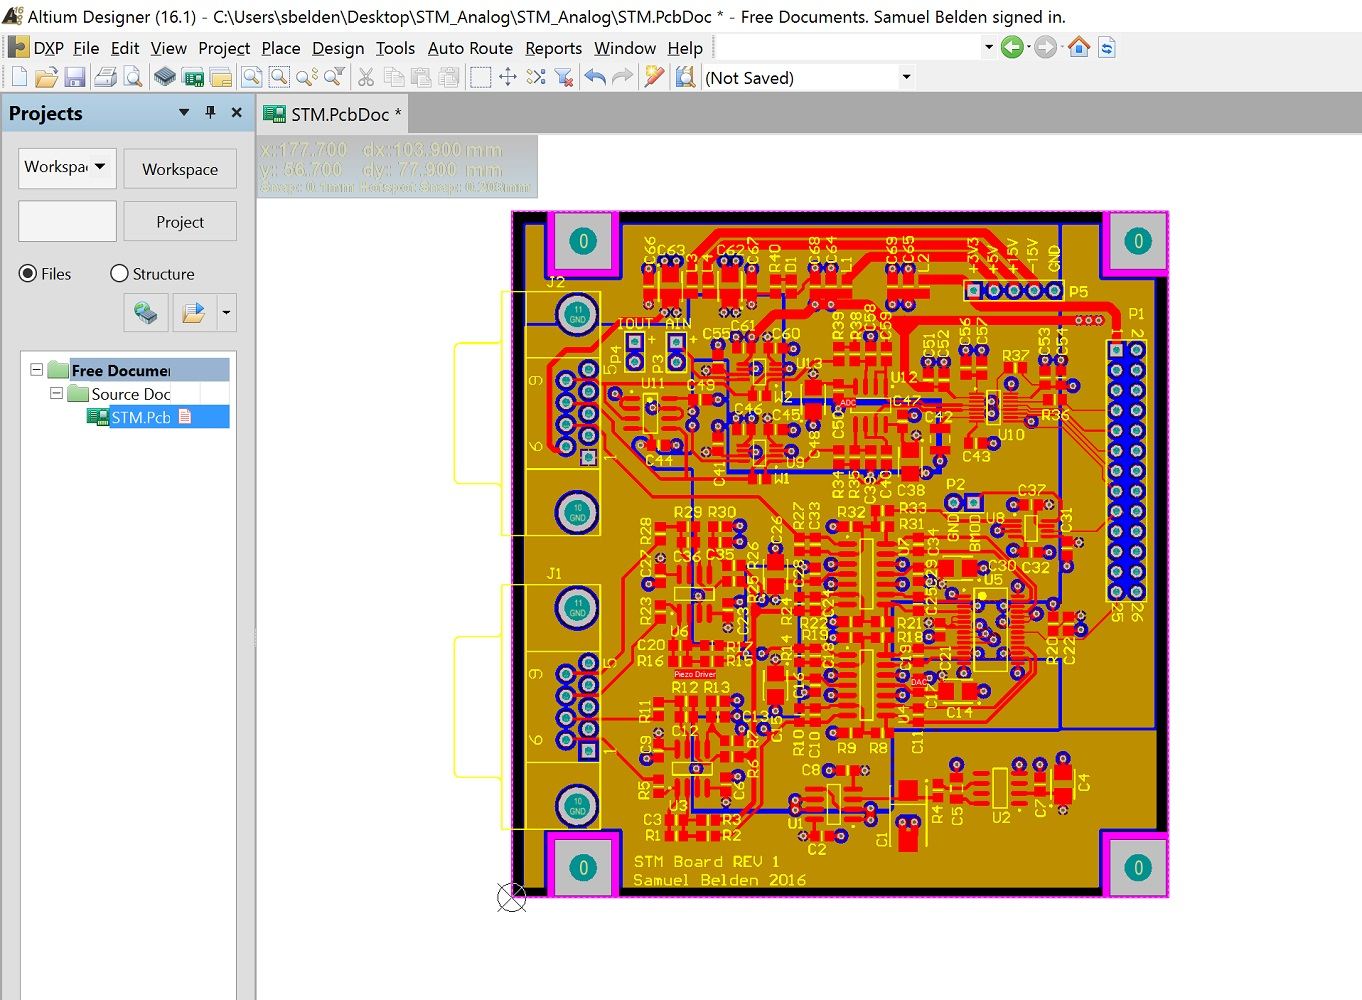 Samuel Belden How To Make Almost Anything Colorful Geometric Shapes Circuit Board Pattern Square Wall Clock This Surprisingly Actually Works Pretty Well The Scanning Data Tunneling Current And Output Z Axis Height Change Are Send Over Usb Pc C Program